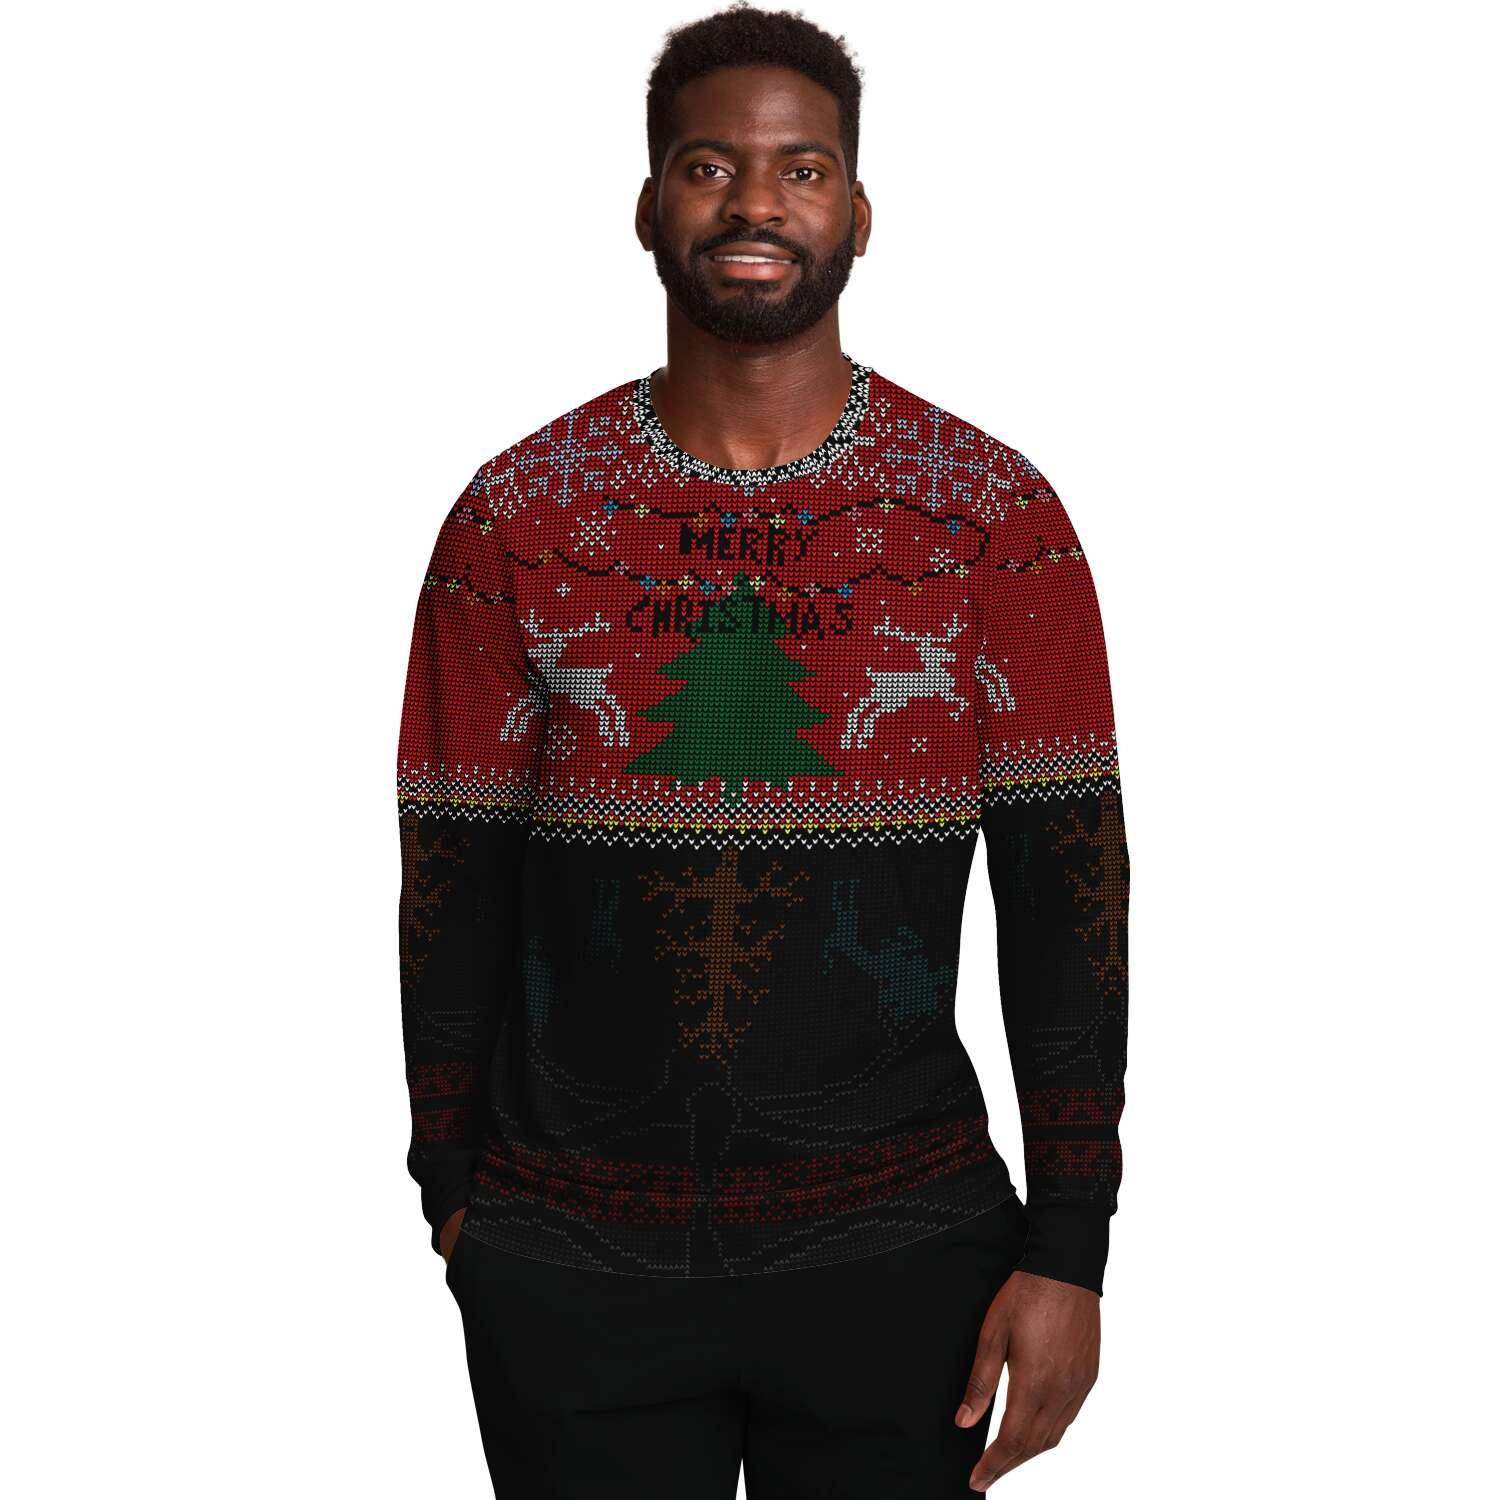 Upside Down Ugly Christmas Sweater - Crescent Chalice